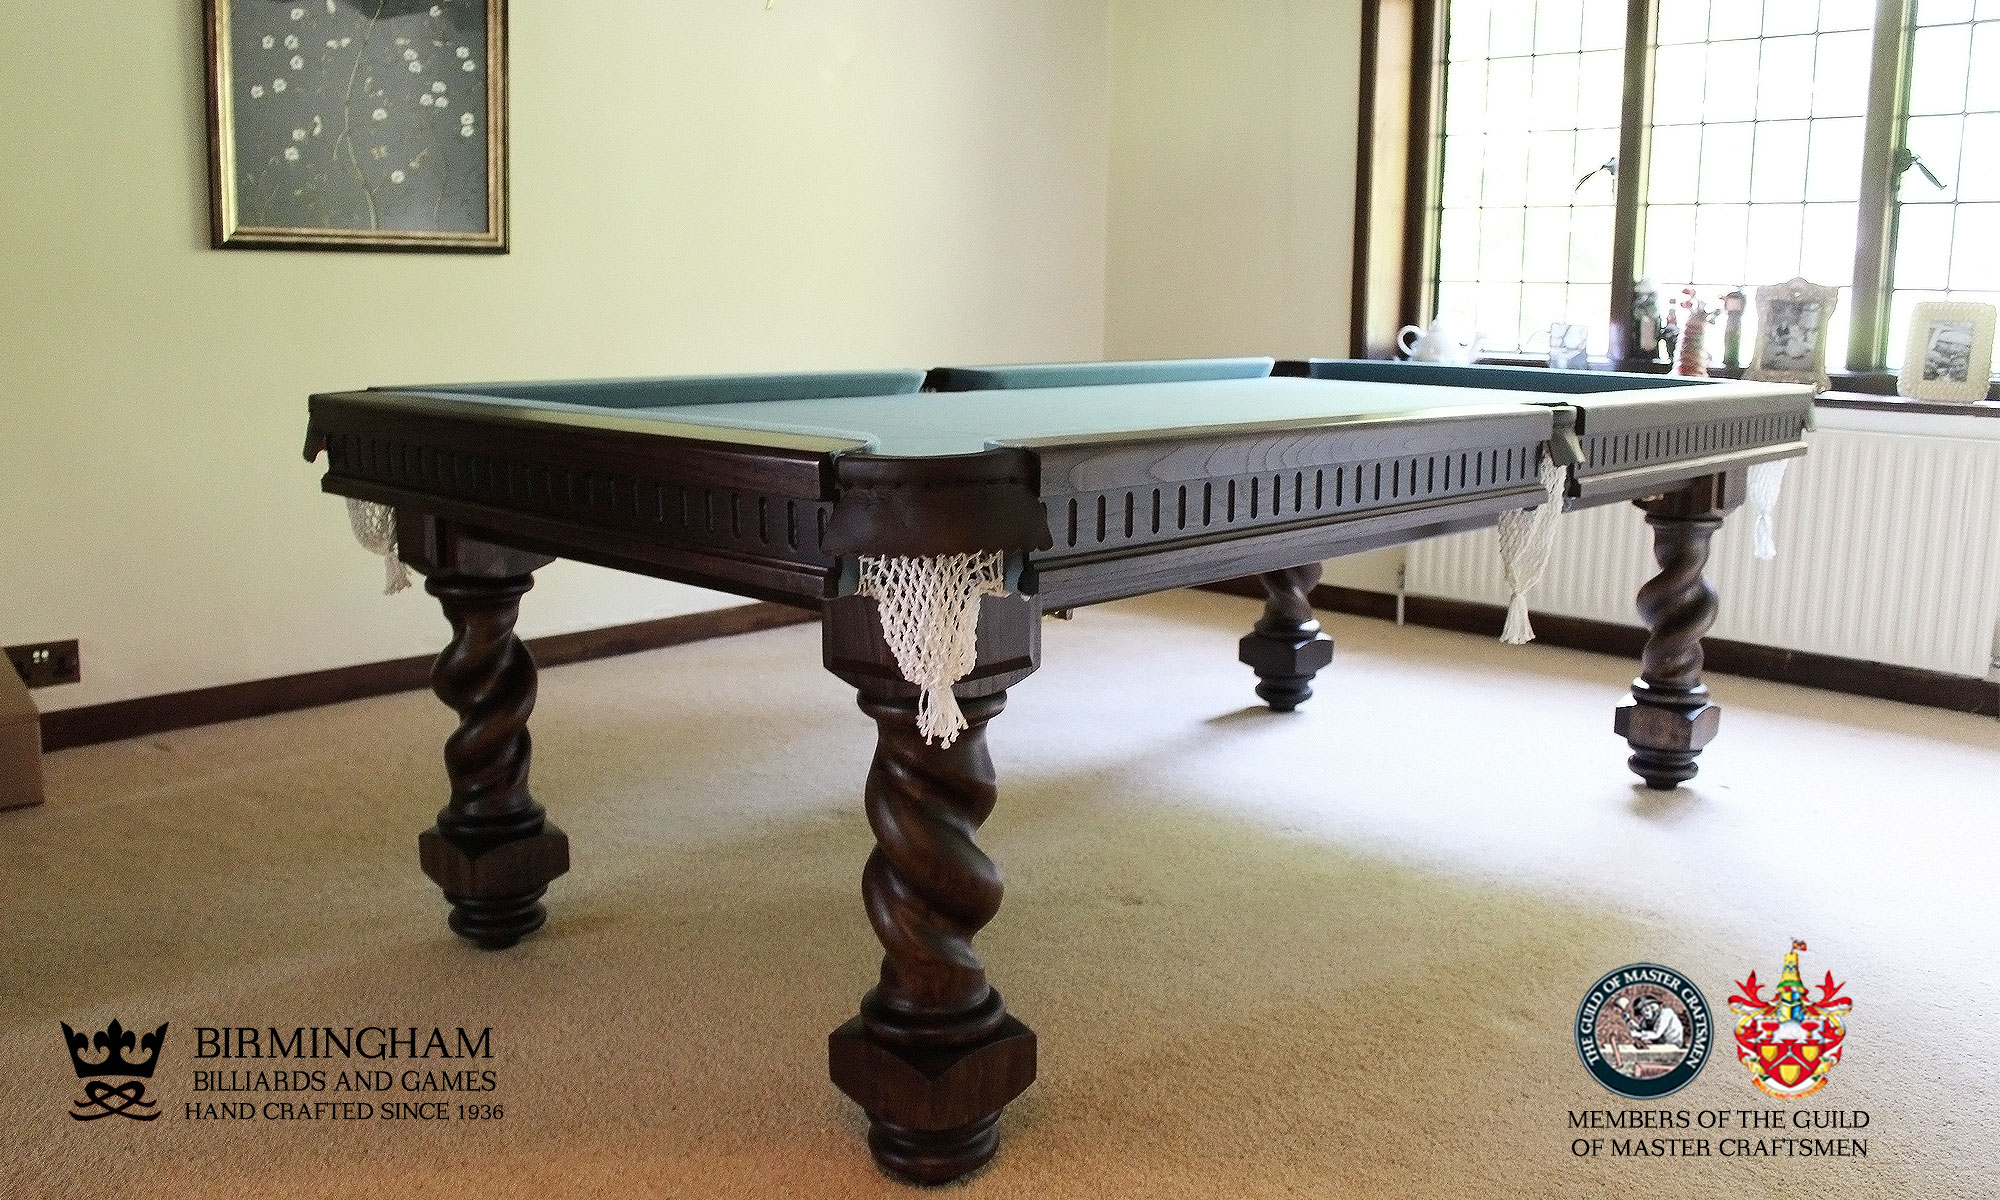 The Barley twist handmade pool table, dark oak finish with powder blue baize